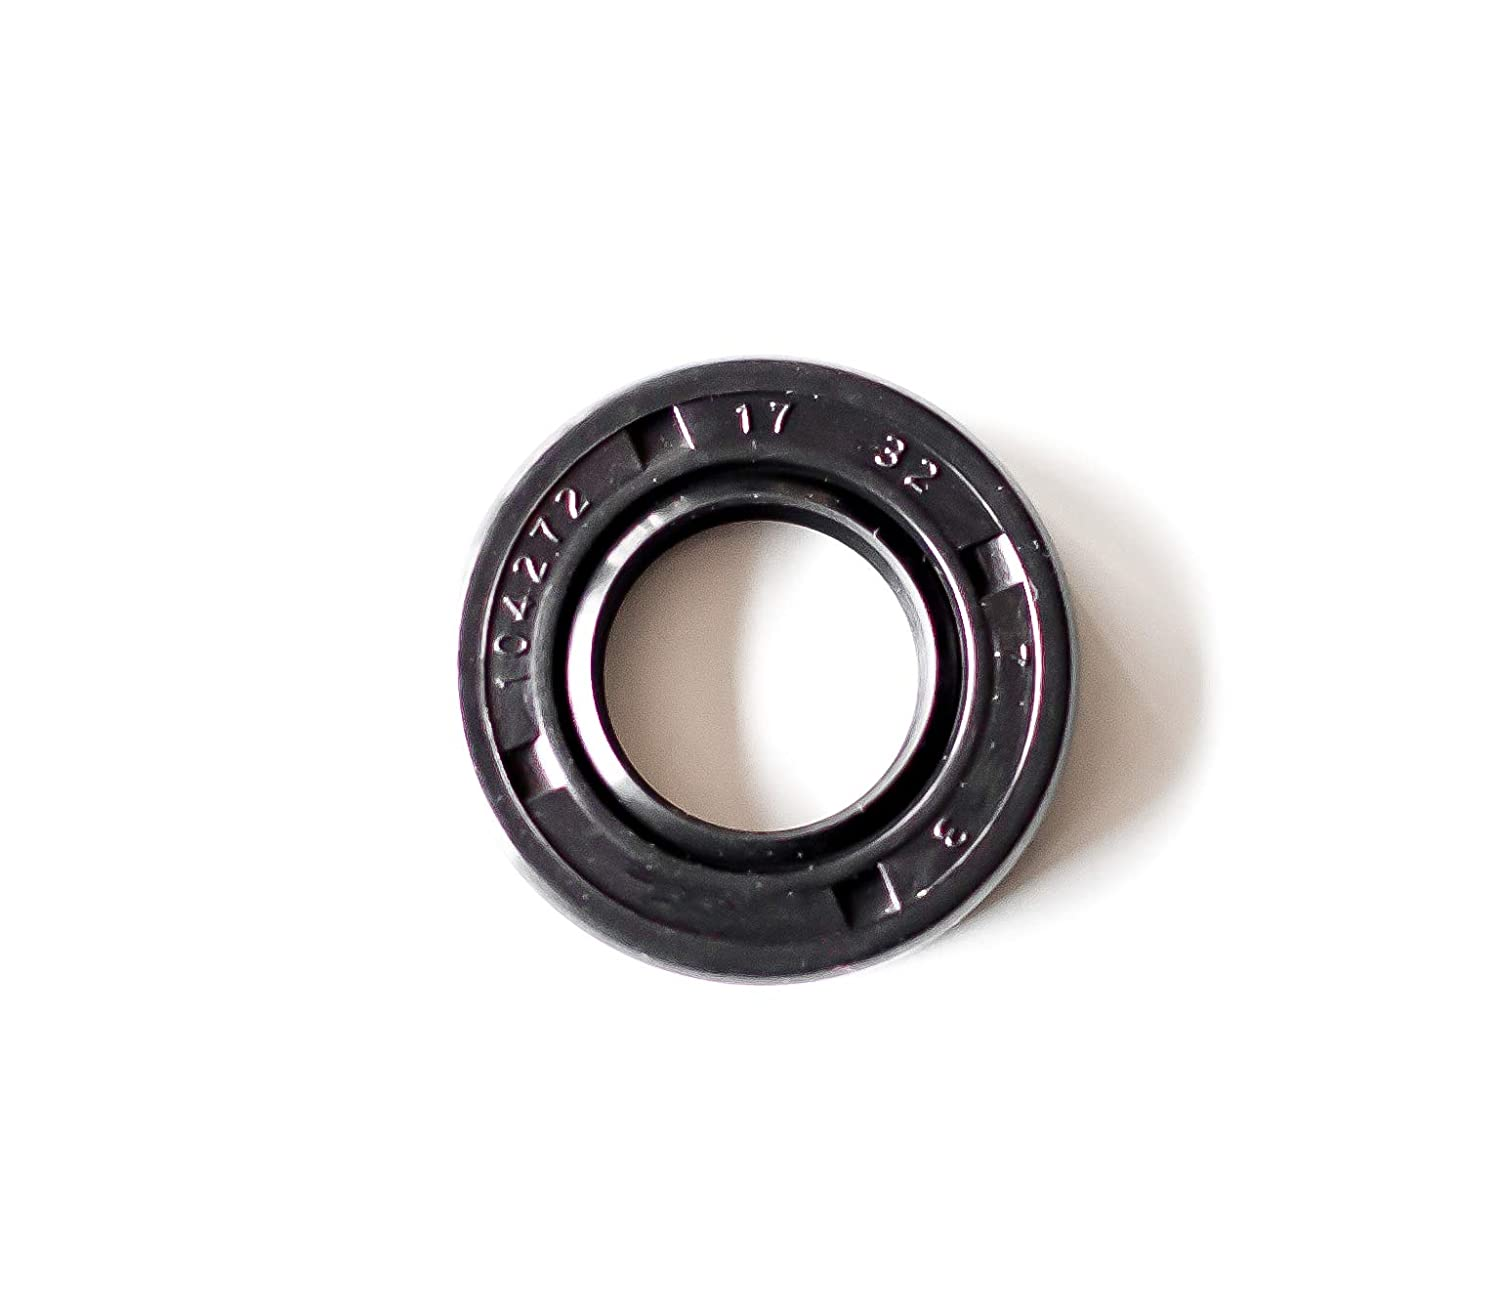 1.181x1.850x0.276 Oil Seal 30X47X7 Oil Seal Grease Seal TC EAI Rubber Double Lip w//Garter Spring 30mmX47mmX7mm